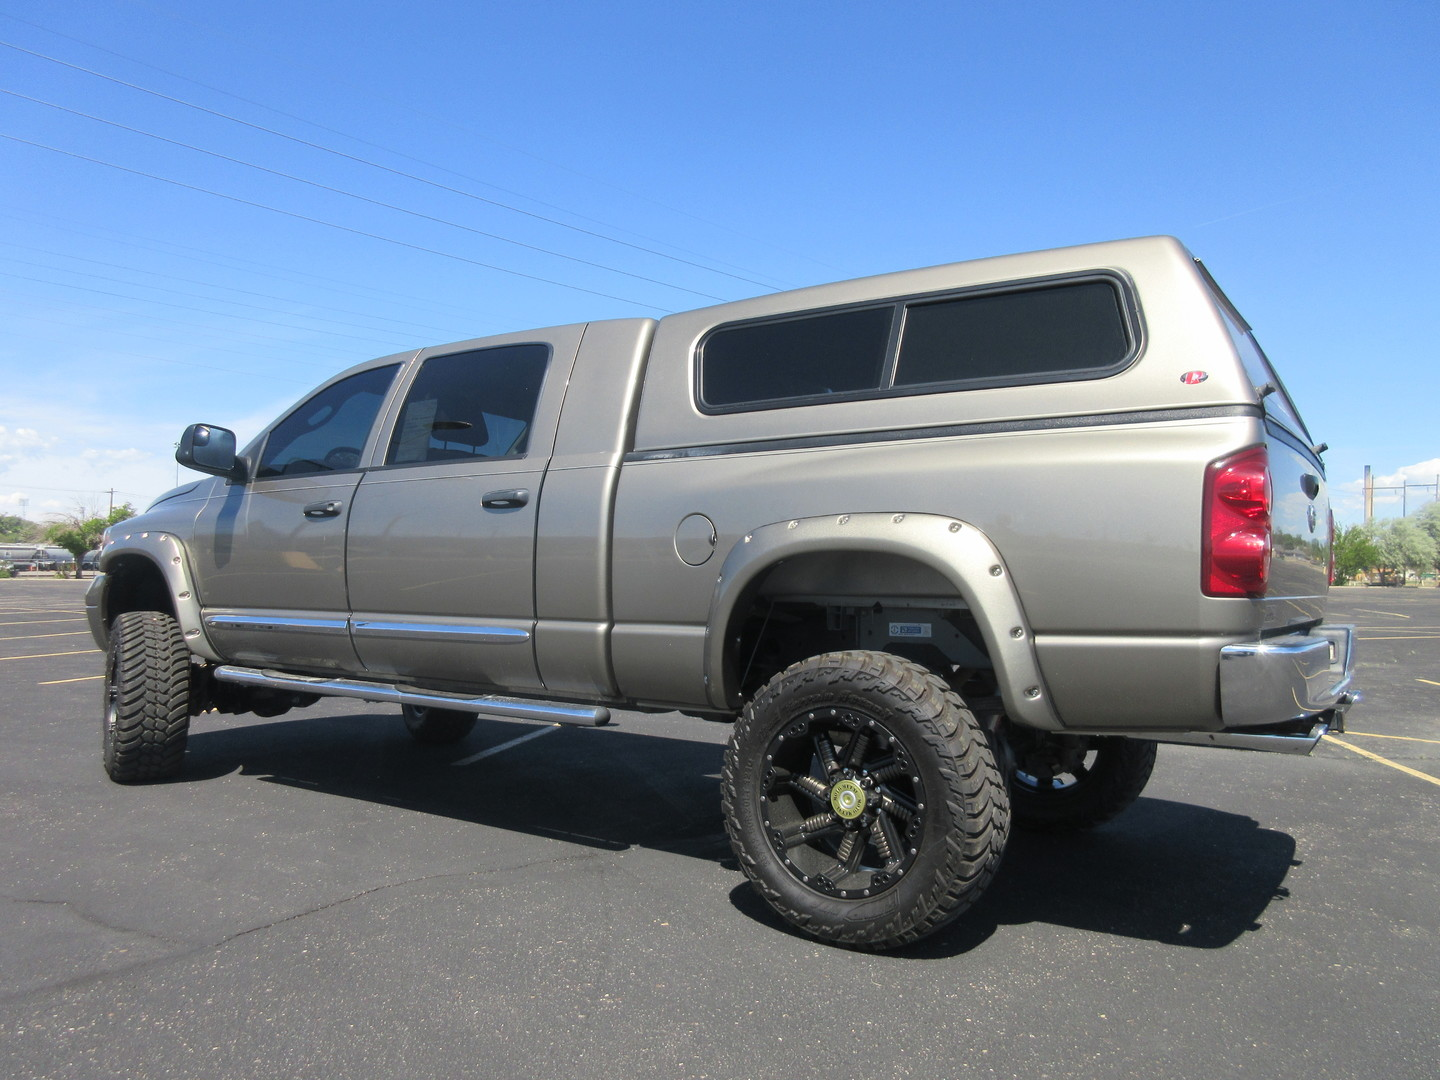 2008 dodge ram 1500 laramie mega cab 4x4 5 lift fultons. Black Bedroom Furniture Sets. Home Design Ideas